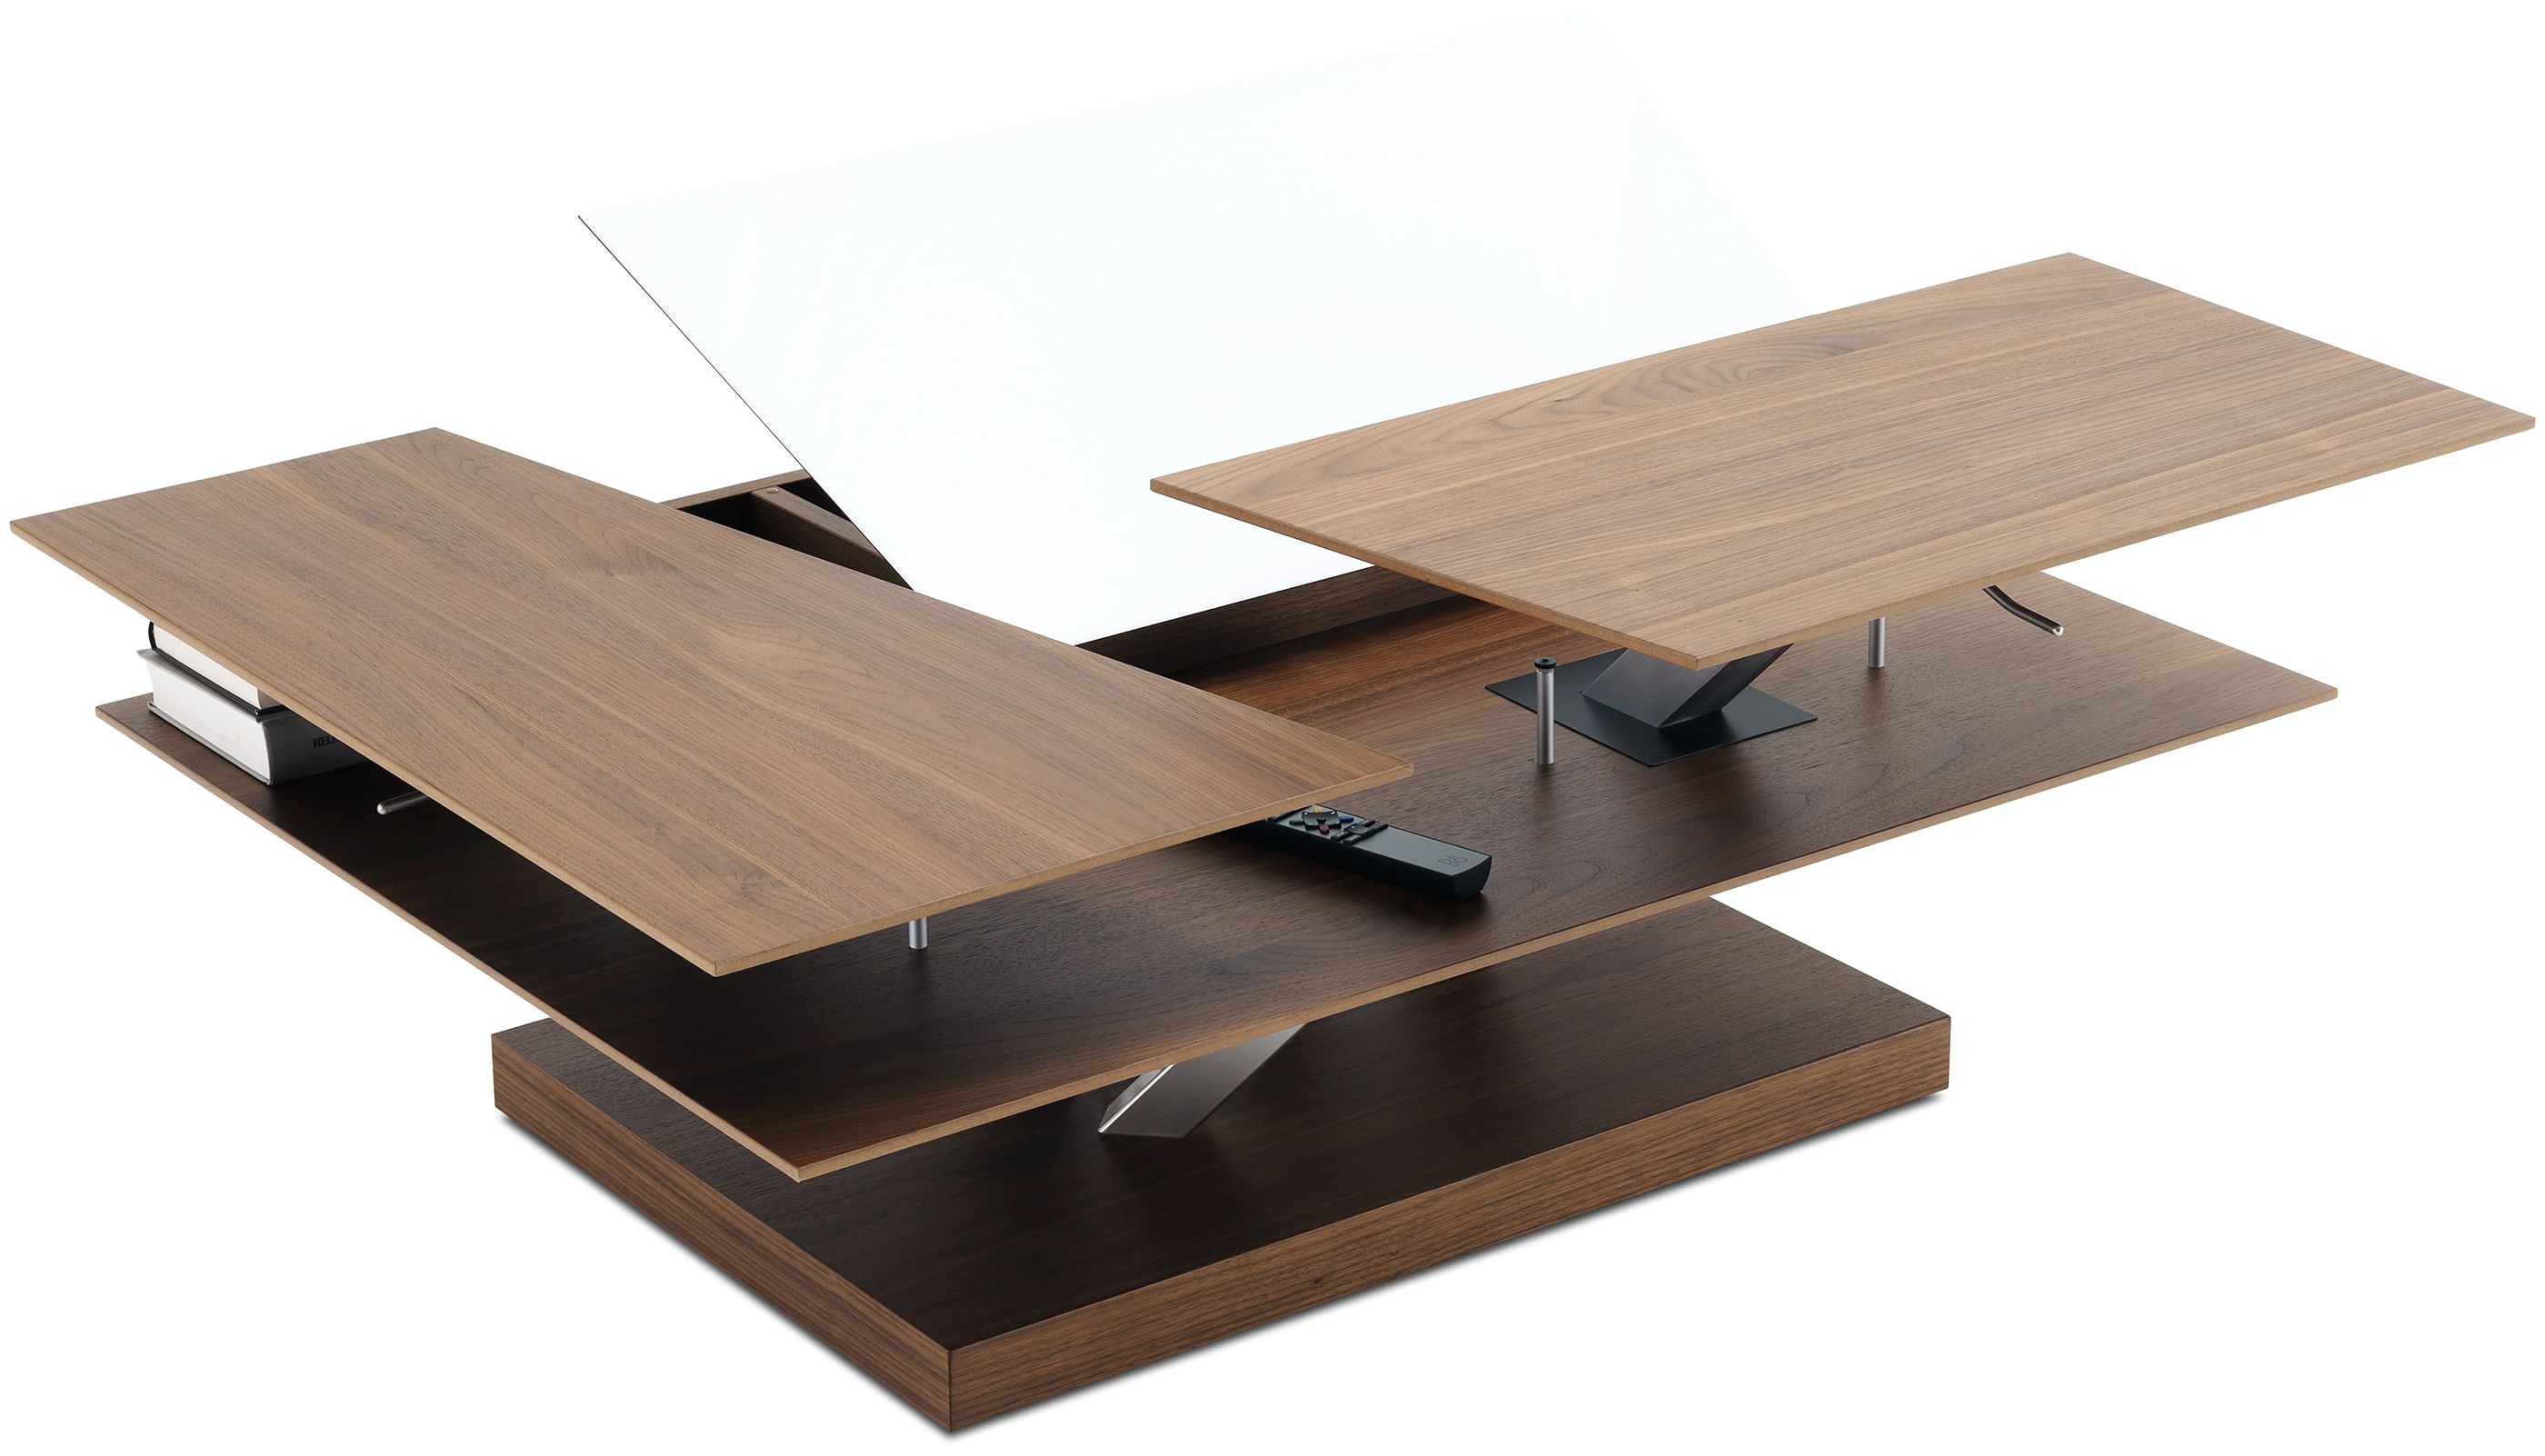 Barcelona Functional Coffee Table With Storage Available In Different Colors As Shown Walnut Ven Coffee Table Coffee Table With Storage Modern Coffee Tables [ 1602 x 2800 Pixel ]